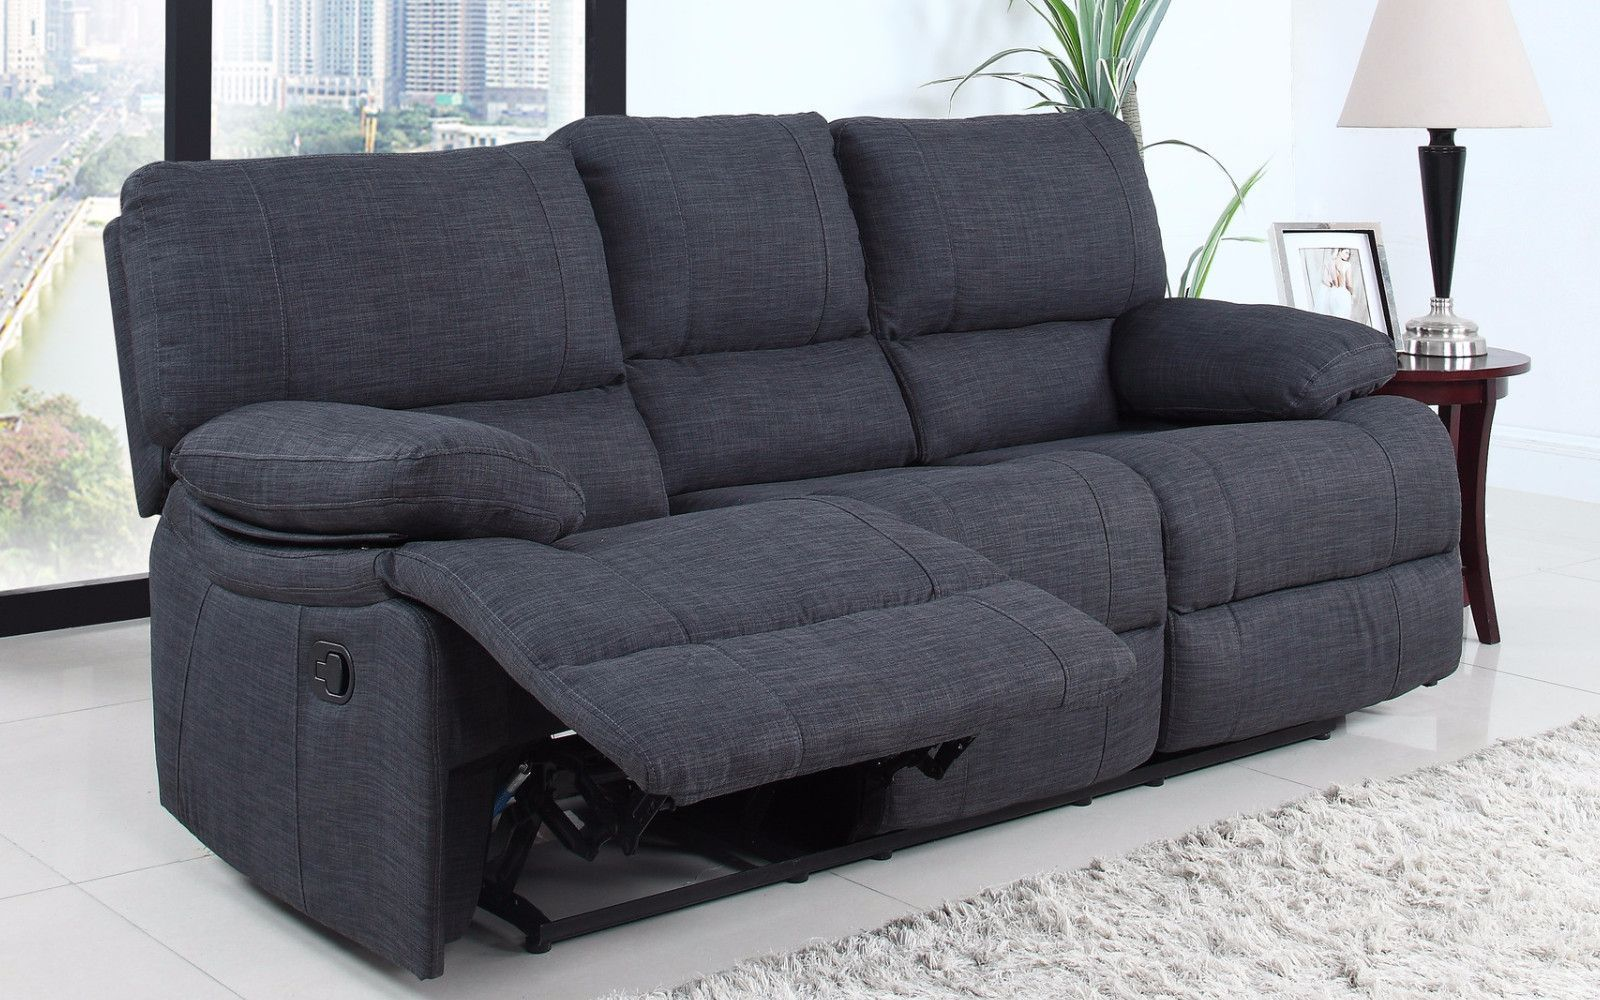 Sensational Traditional Dark Grey Fabric Oversize Recliner Sofa Grey Pdpeps Interior Chair Design Pdpepsorg